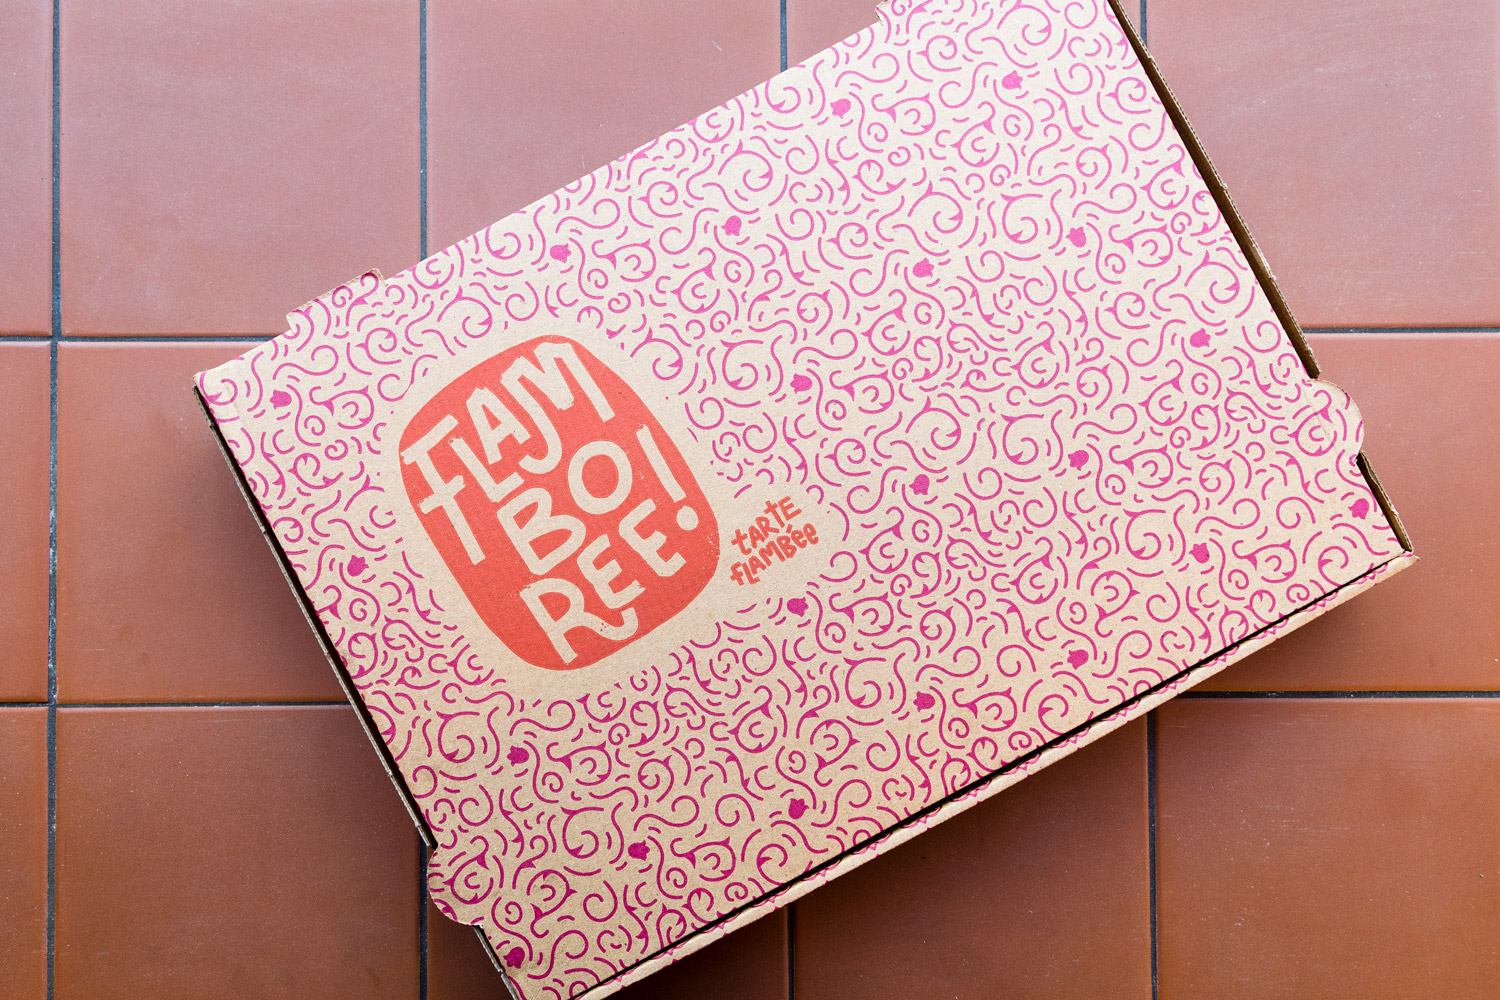 Flat lay showing a pink and red tarte flambée takeaway box with a contemporary floral pattern on it, placed on a tiled terracotta background, in Flamboree, designed by SAINT Design.